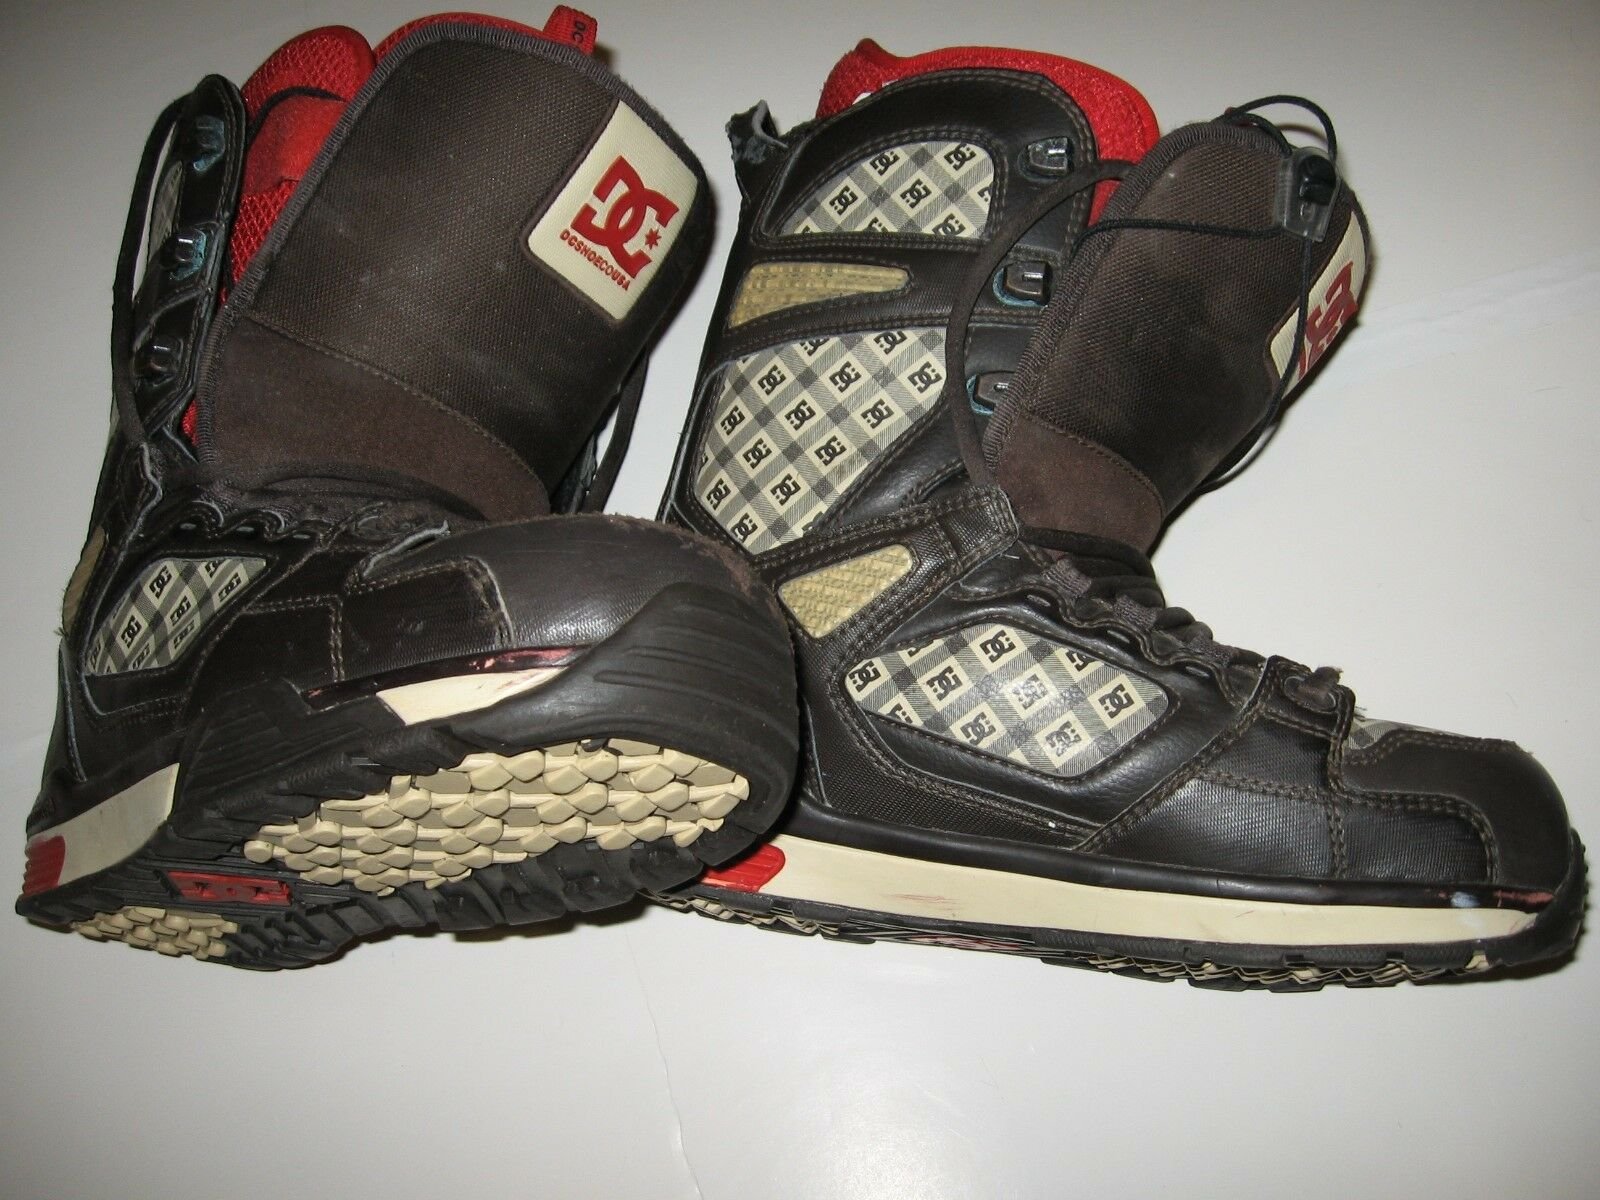 DC SHOES Snowboarding Boots Womens Gel US Sz 8.5L & 25.5 cm by DCSHOECOUSA